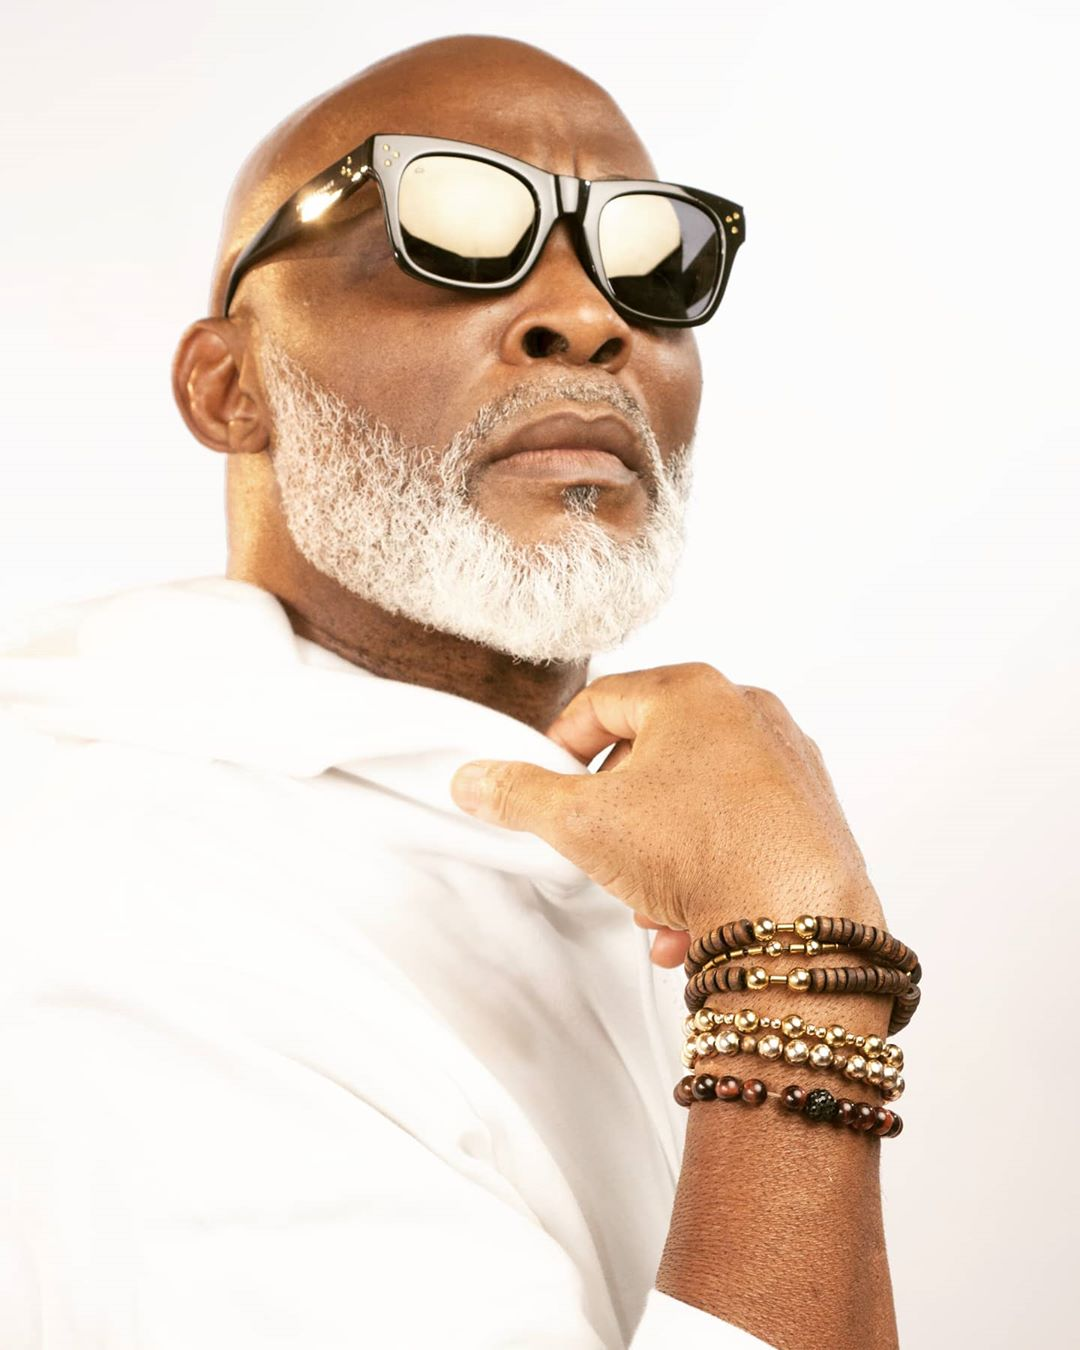 Nollywood Actor Richard Mofe-Damijo Share Photos To Mark His 59th Birthday